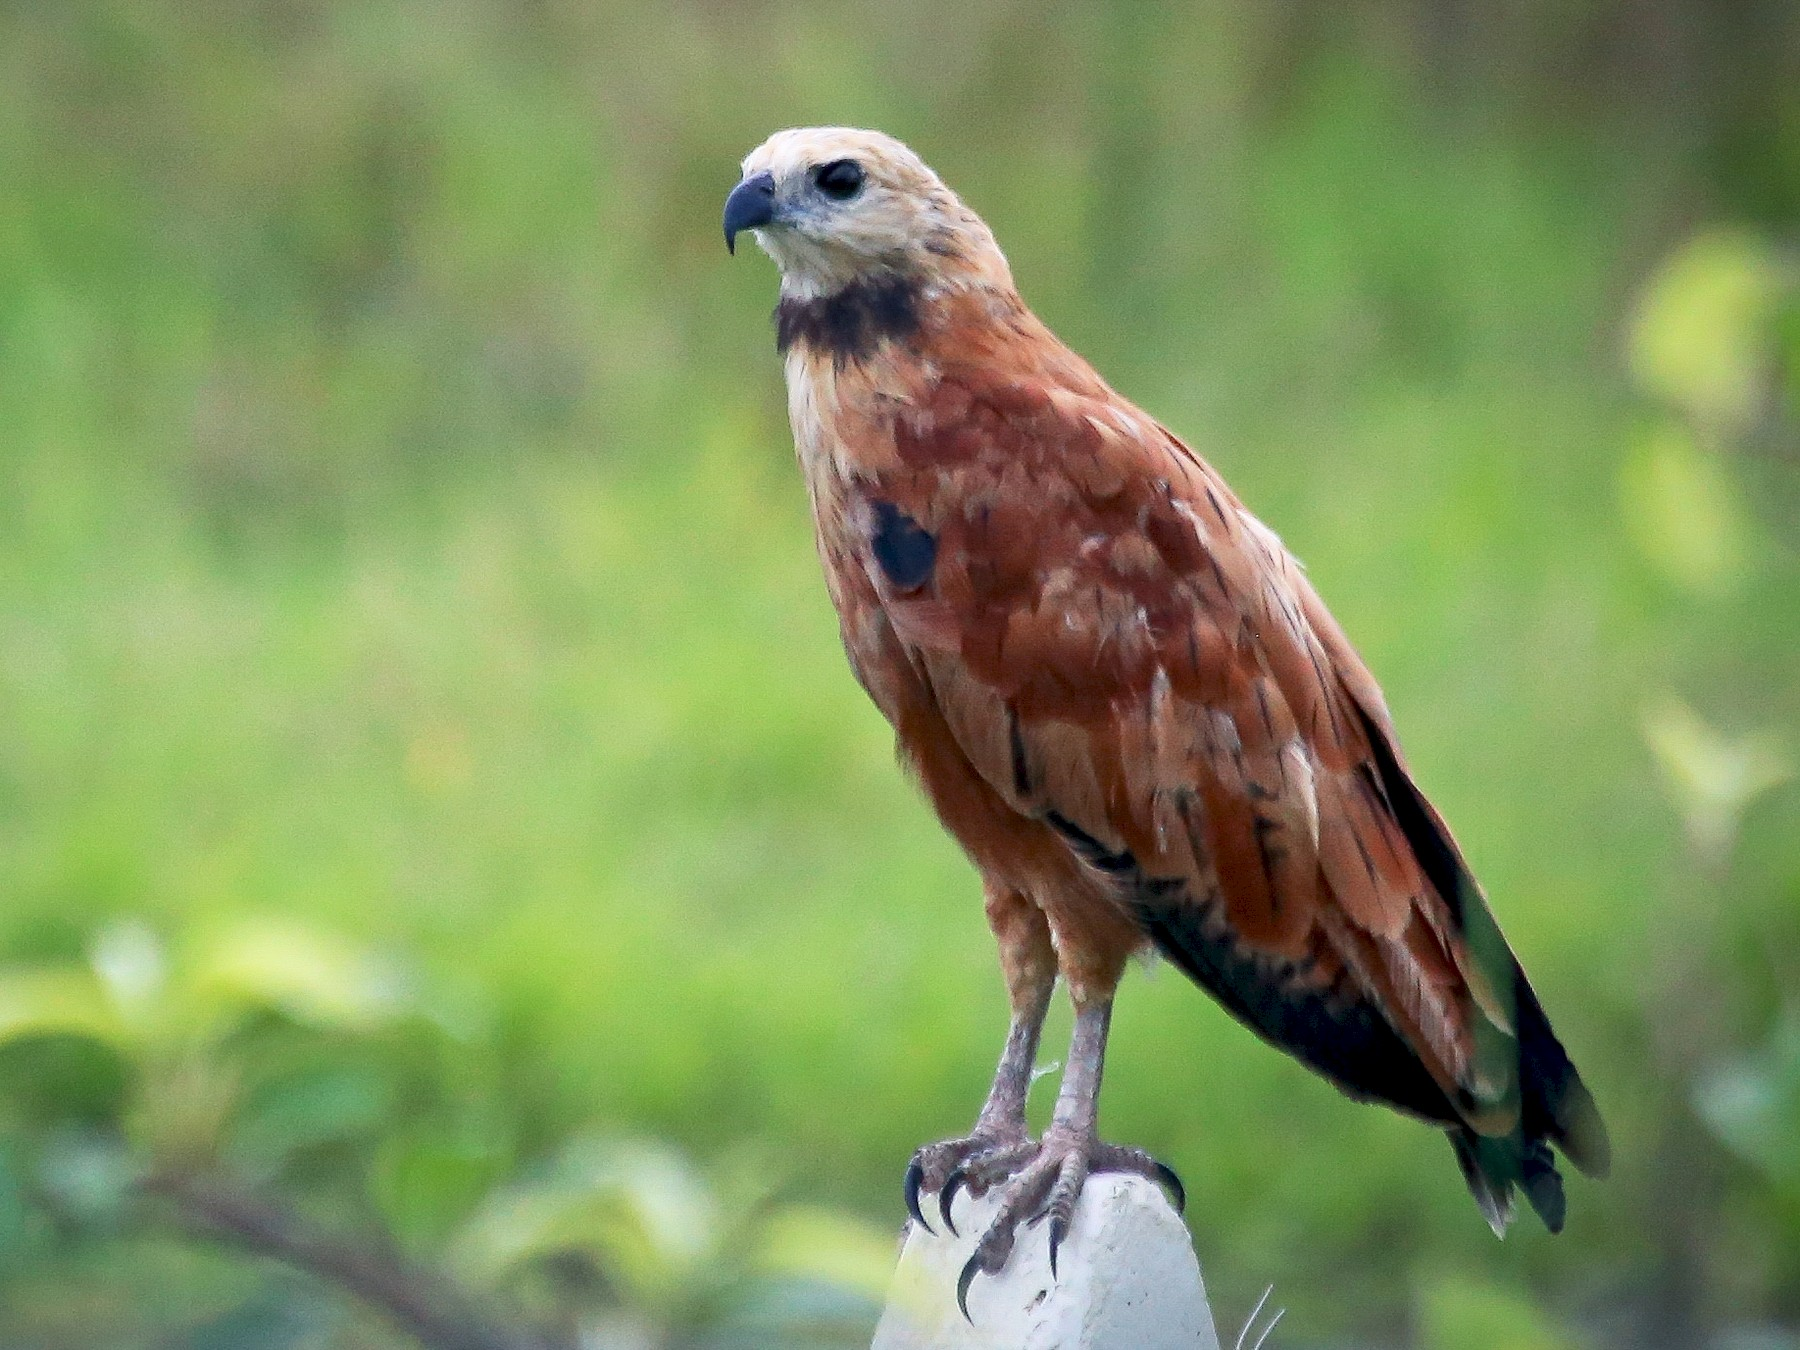 Black-collared Hawk - Chantelle du Plessis (Andes EcoTours)